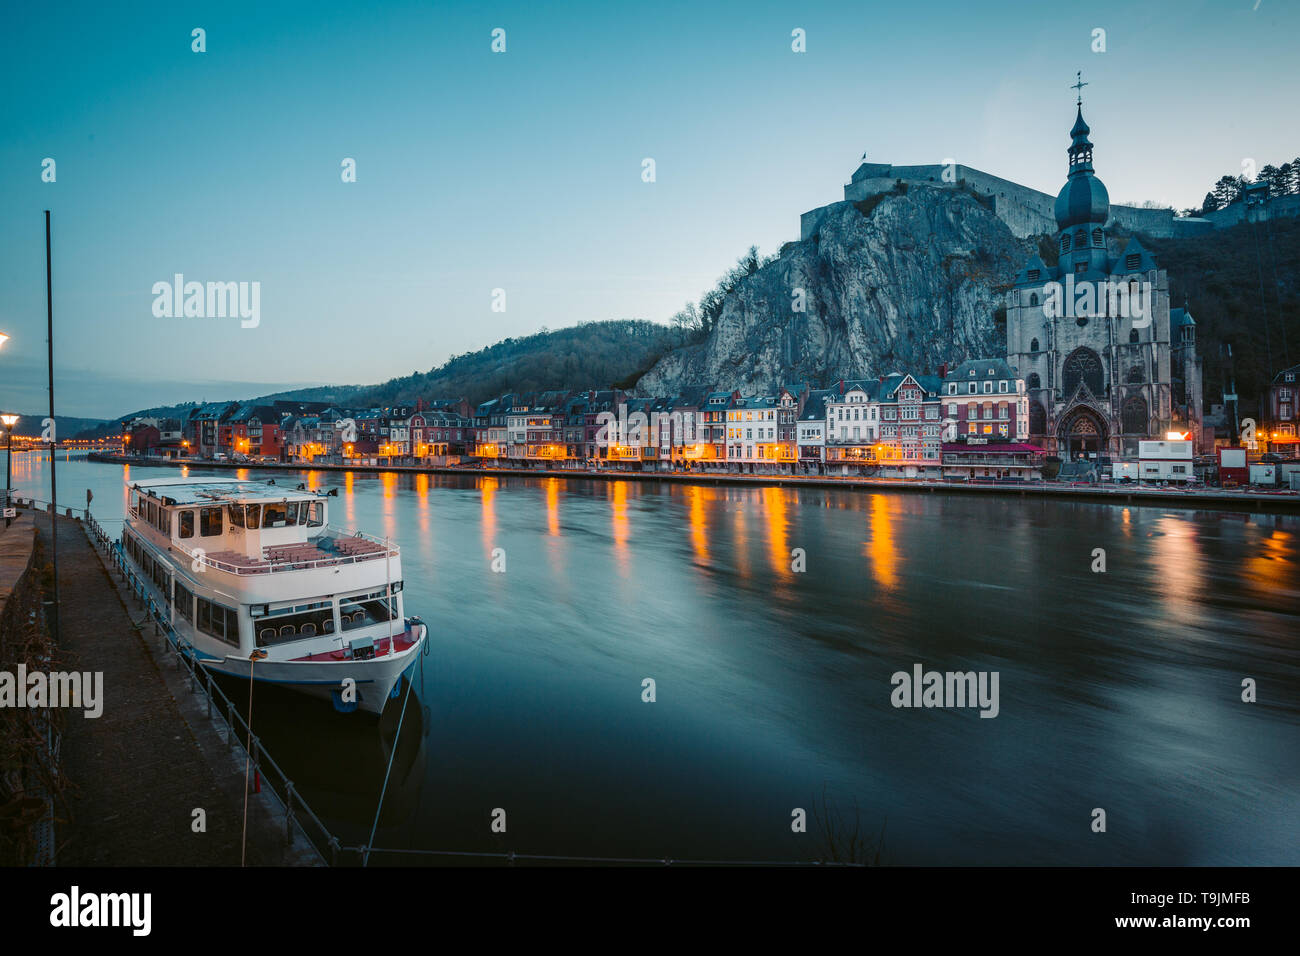 Classic view of the historic town of Dinant with scenic River Meuse in beautiful evening twilight light during blue hour at dusk, province of Namur, W - Stock Image